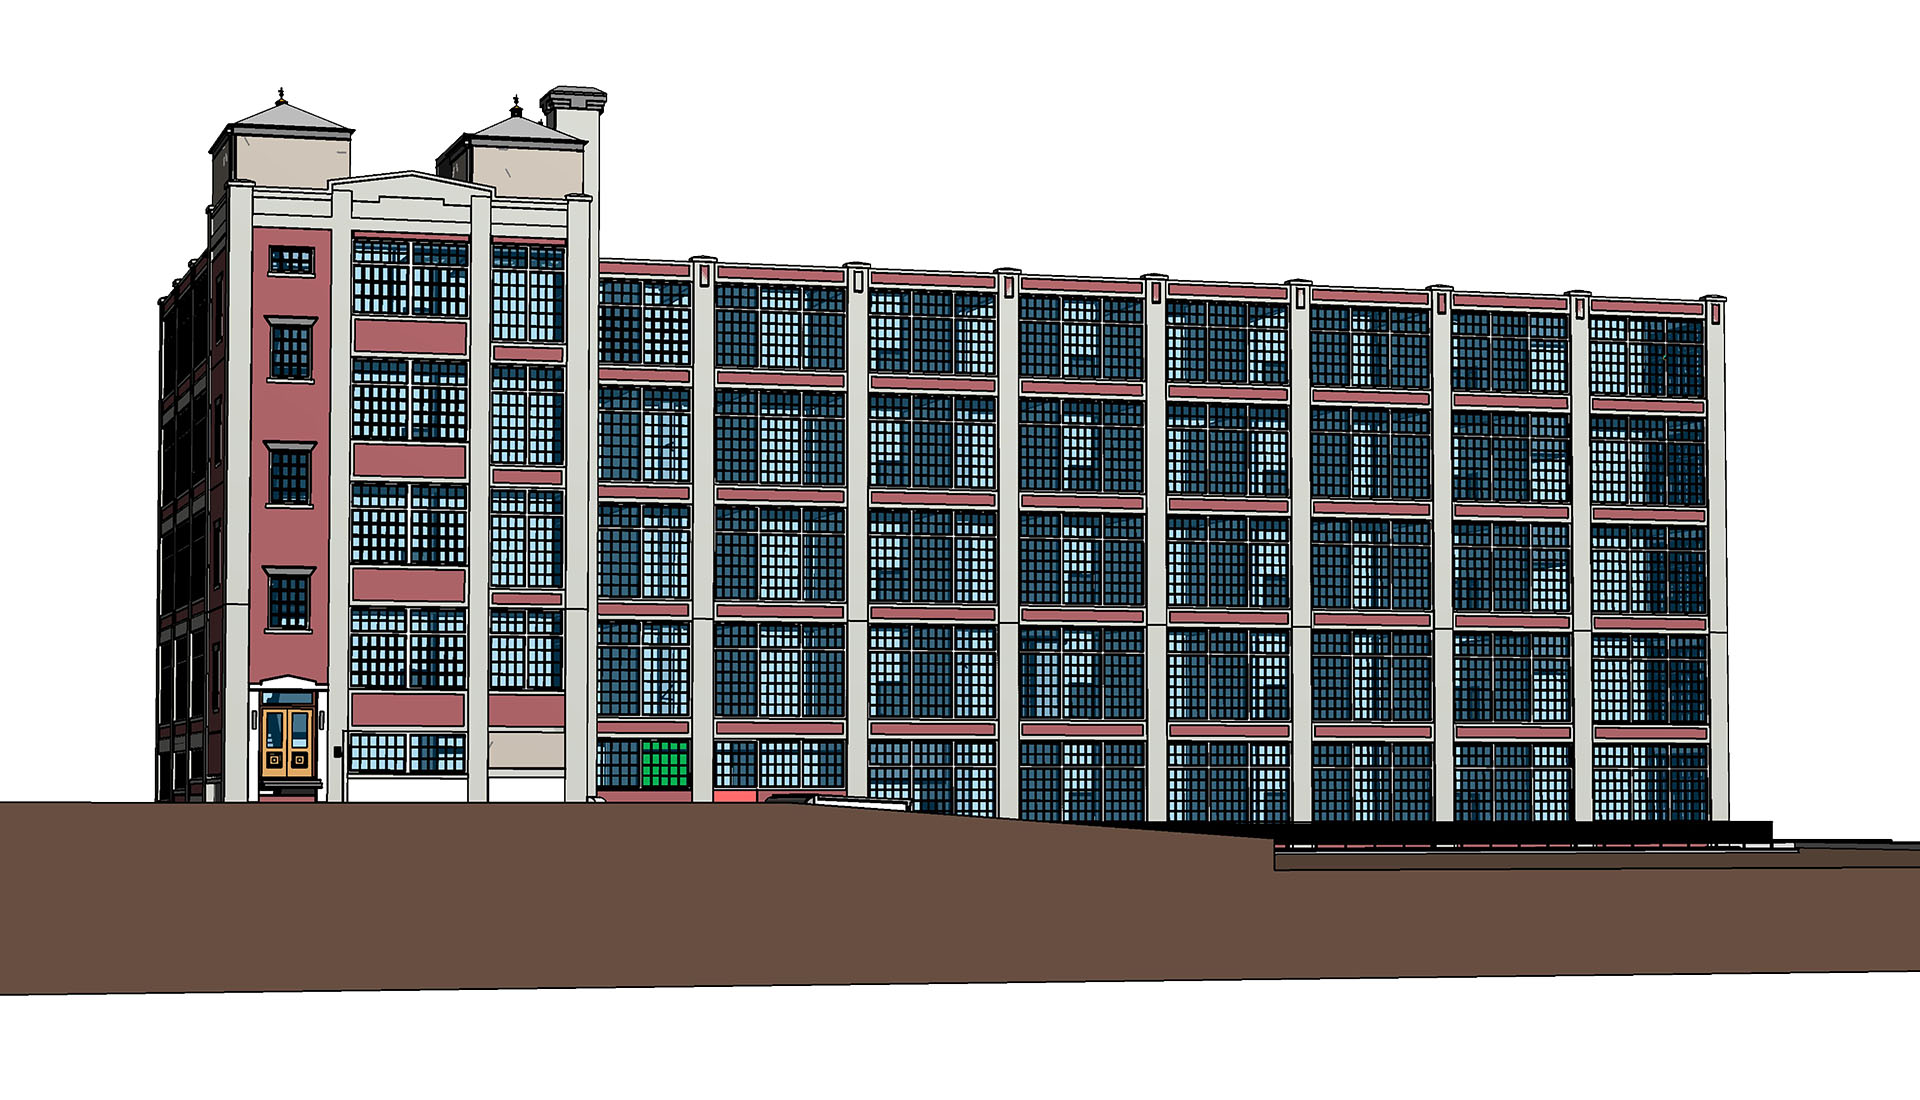 Hospitality-Aloft Hotel- Architecture modeling-Elevation